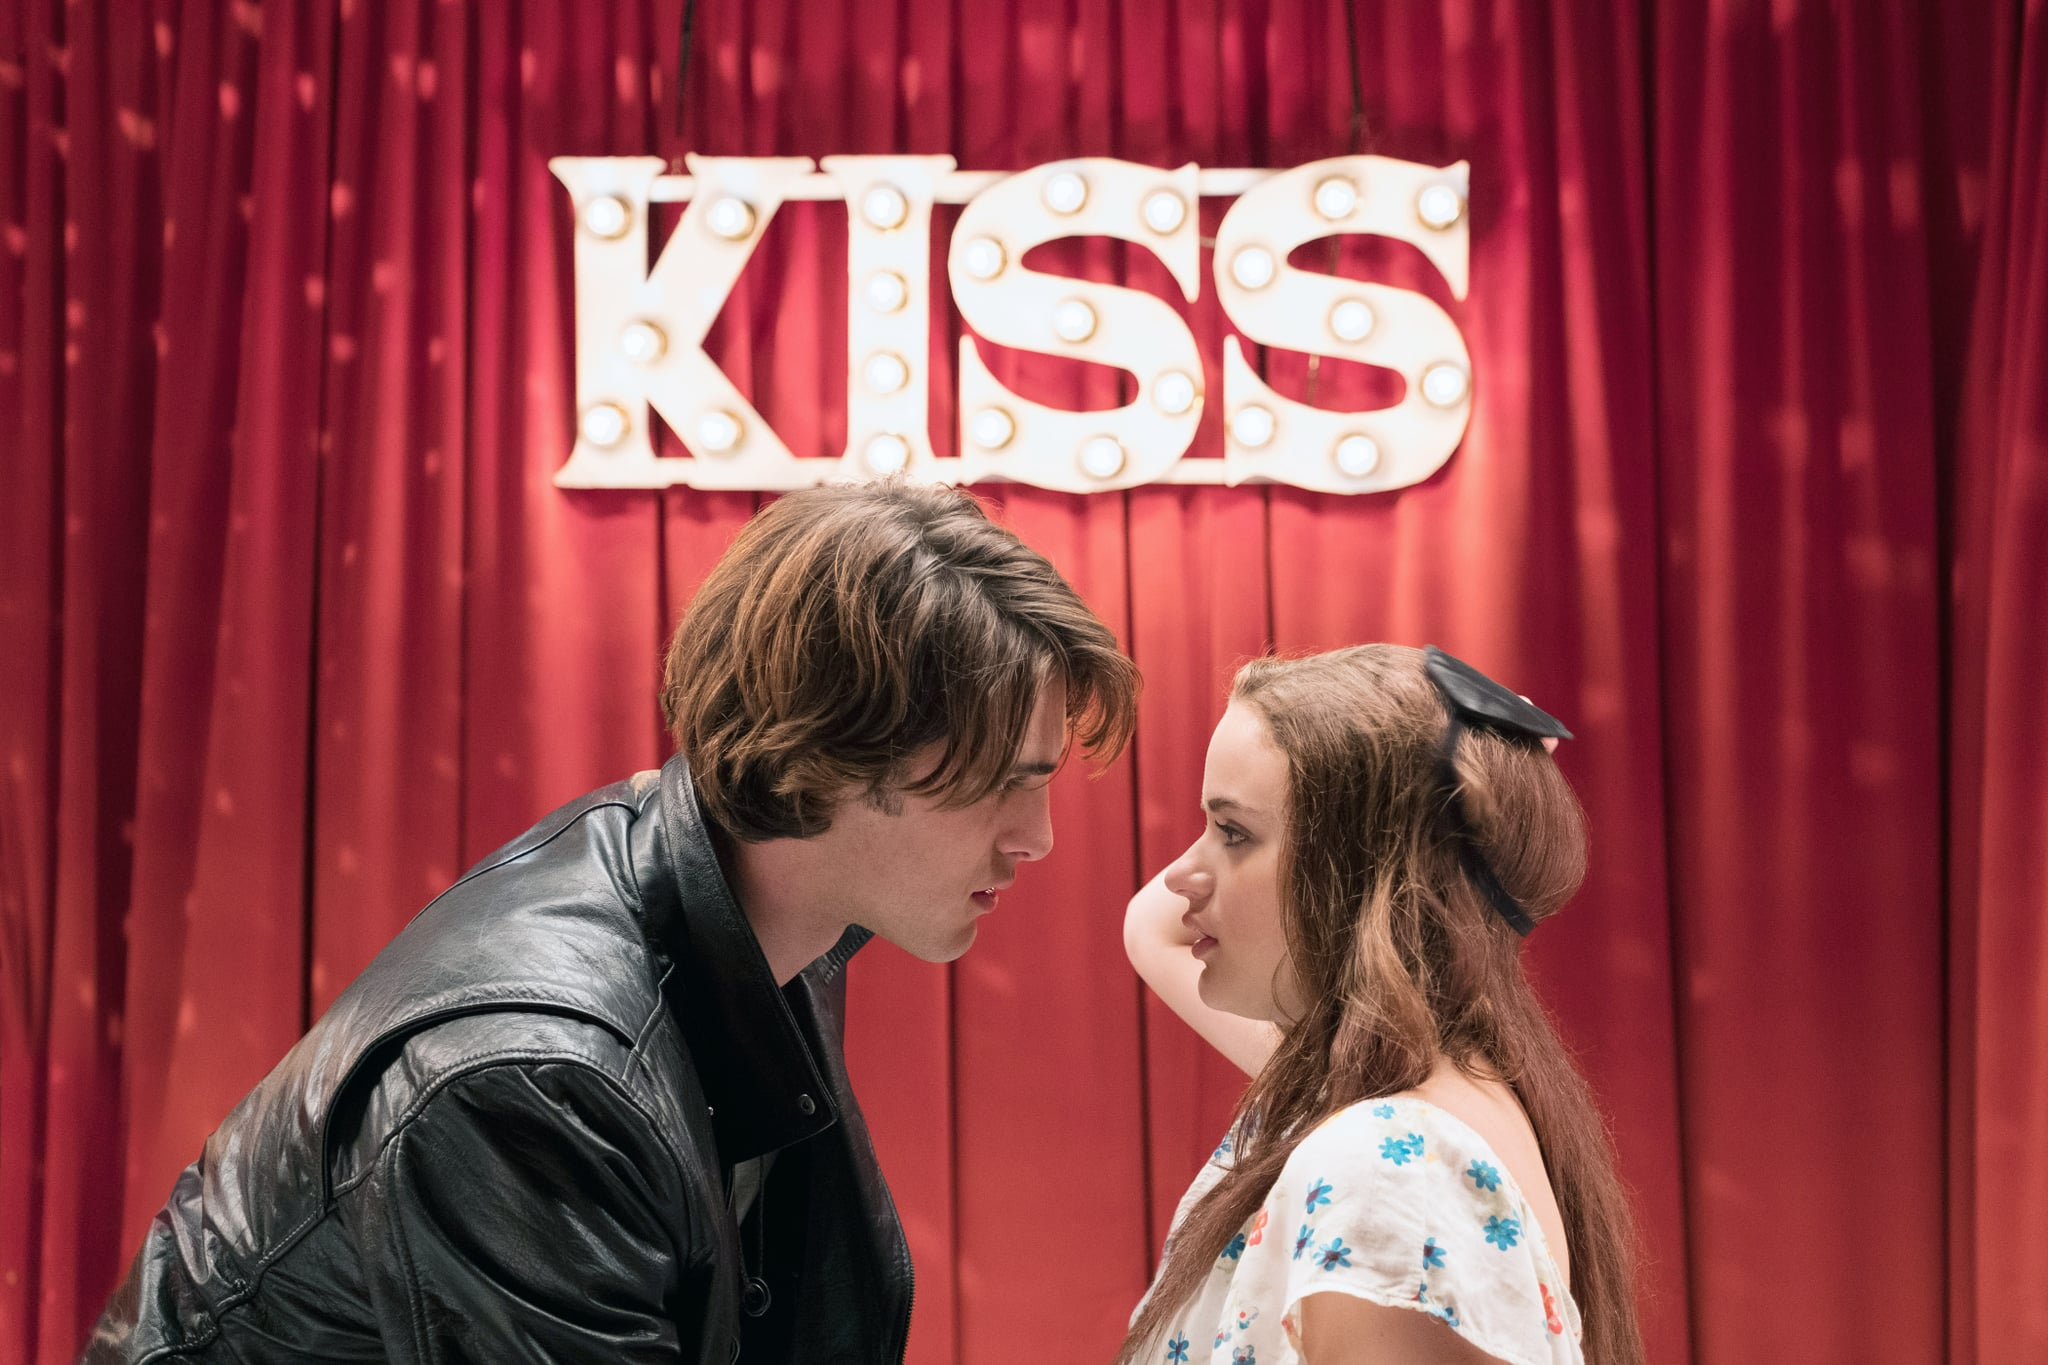 THE KISSING BOOTH, from left: Jacob Elordi, Joey King, 2018. ph: Marcos Cruz / Netflix /Courtesy Everett Collection